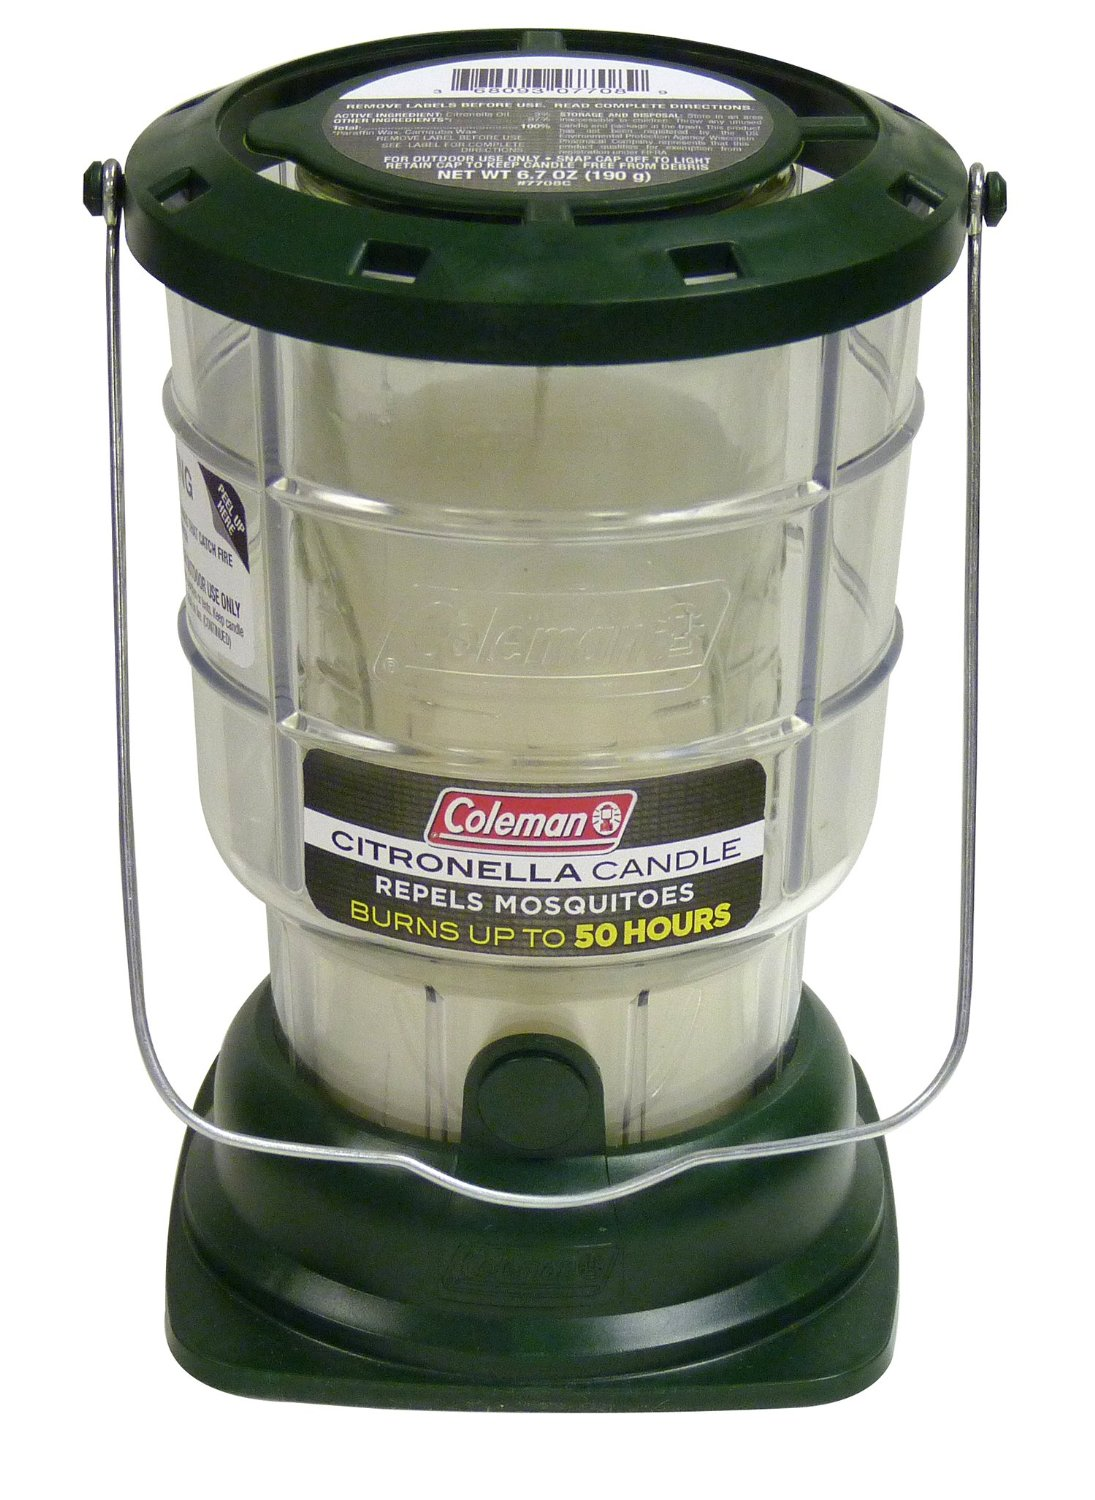 Best Citronella Candles That Work | INSECT COP